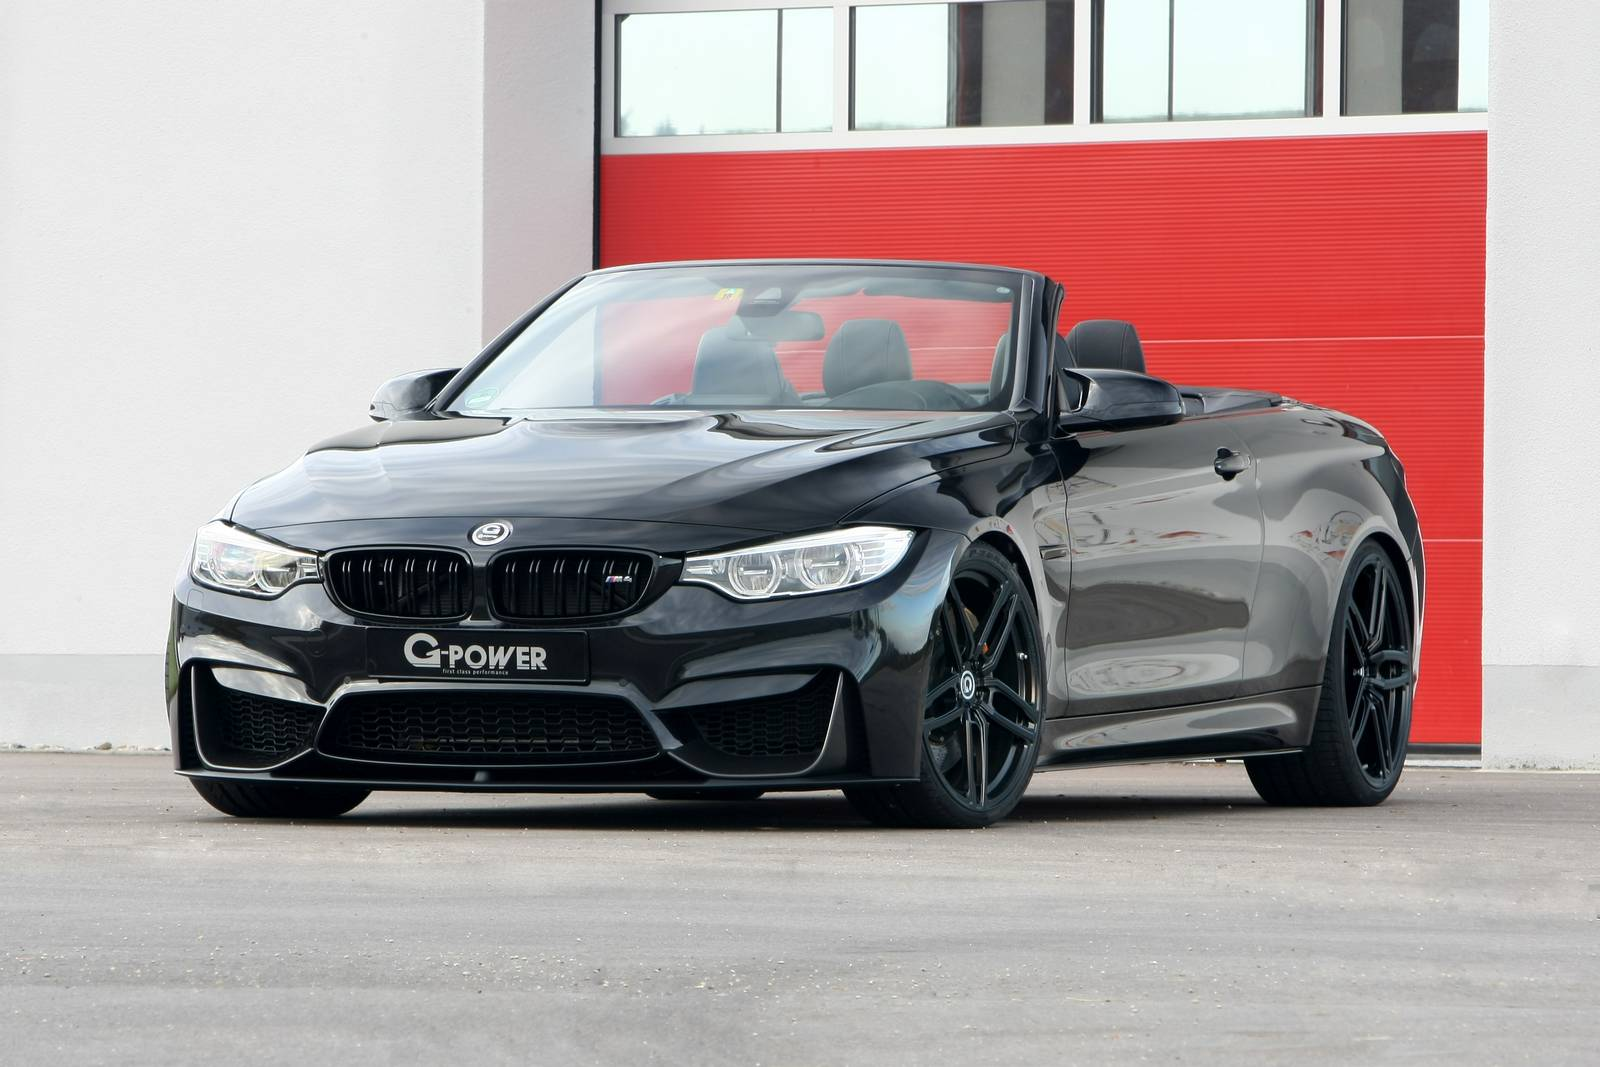 official g power bmw m4 cabriolet gtspirit. Black Bedroom Furniture Sets. Home Design Ideas